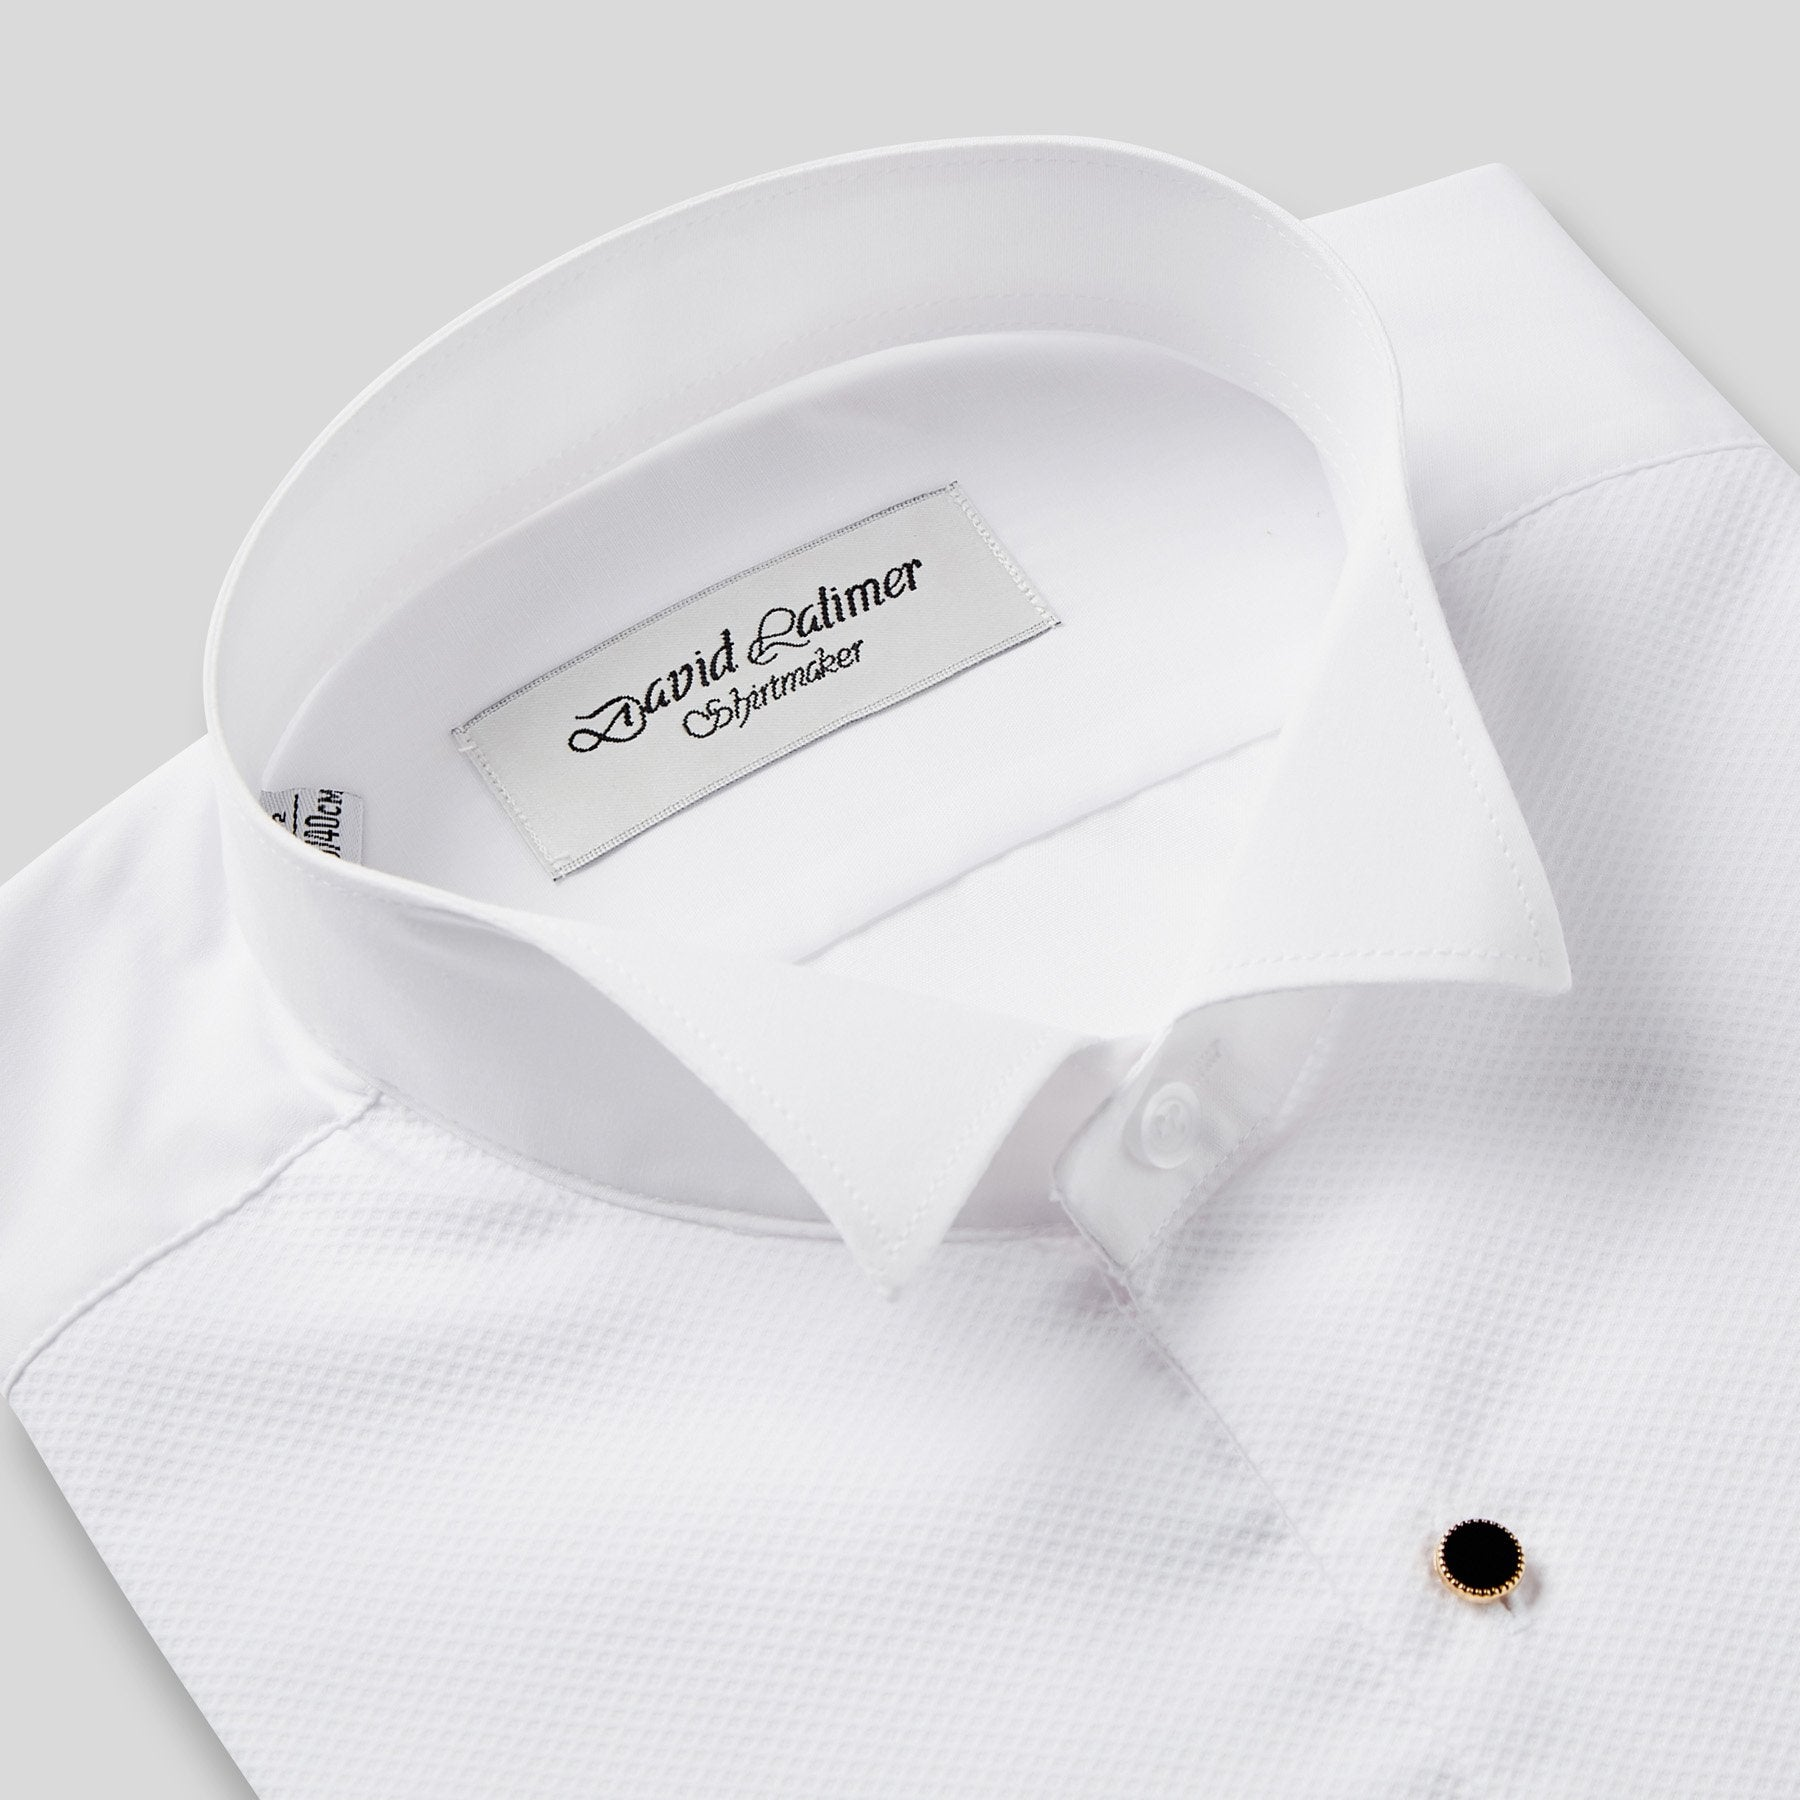 Rael Brook Classic Fit White Marcella Gold Buttons Double Cuff Wing Collar Dress Shirt Collar